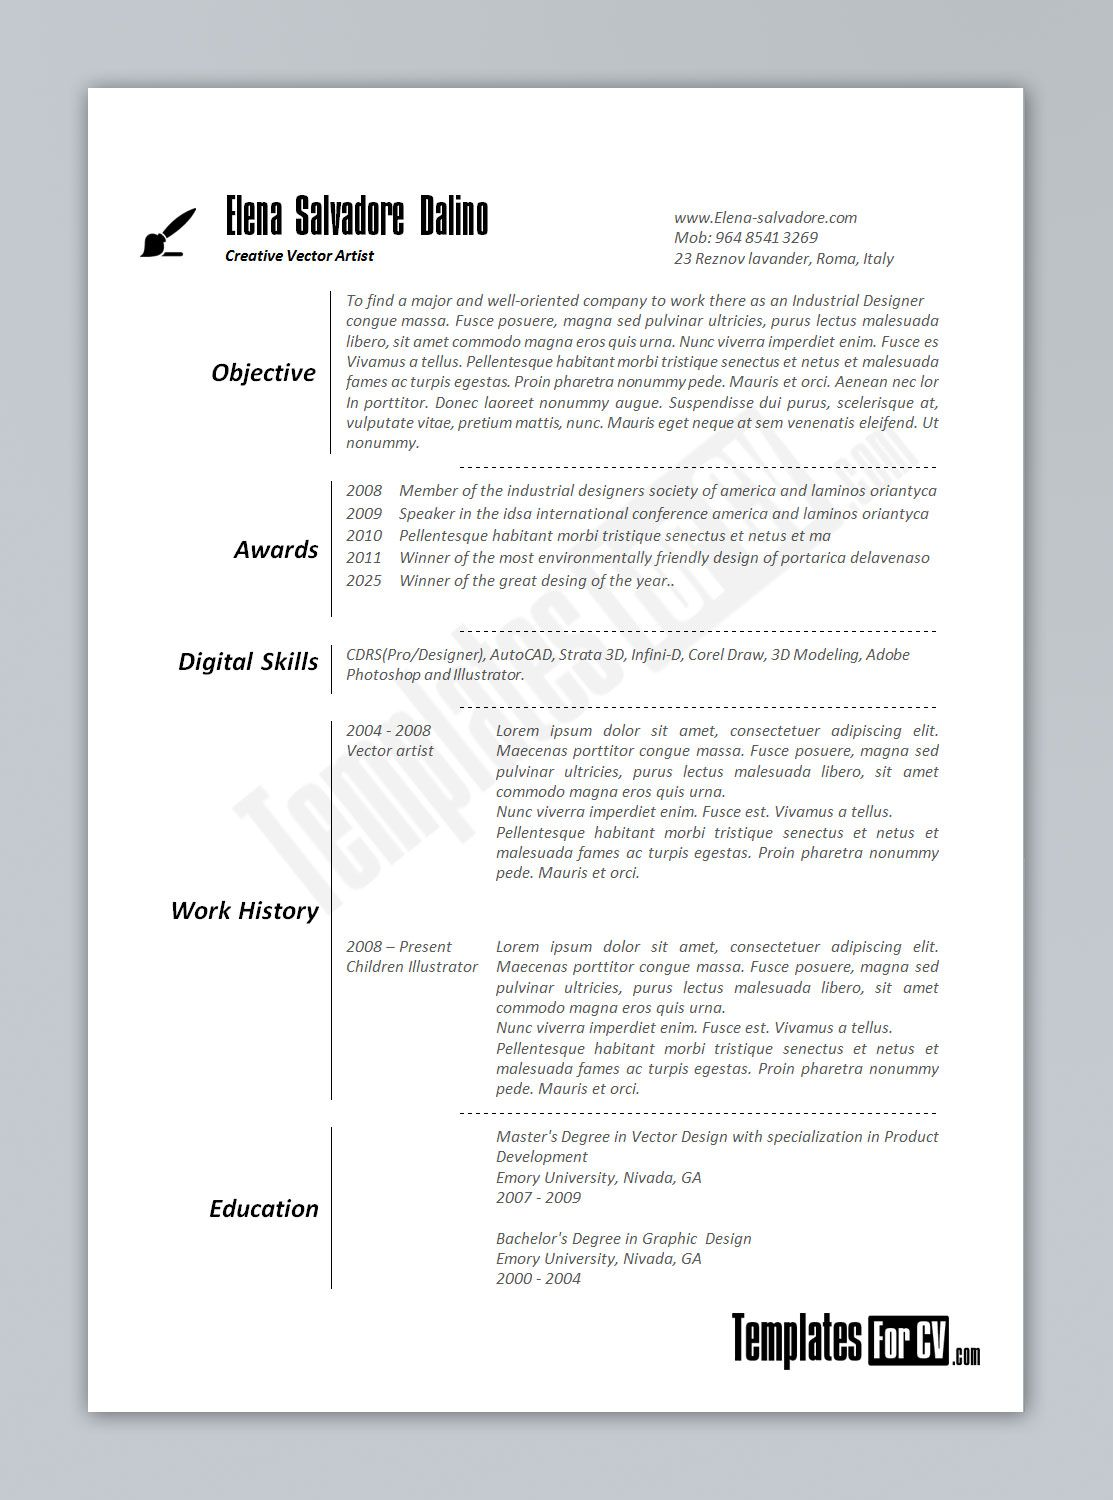 view hundreds of resume examples written by professional resume writers discover how to write a resume using professional phrases formats and styles